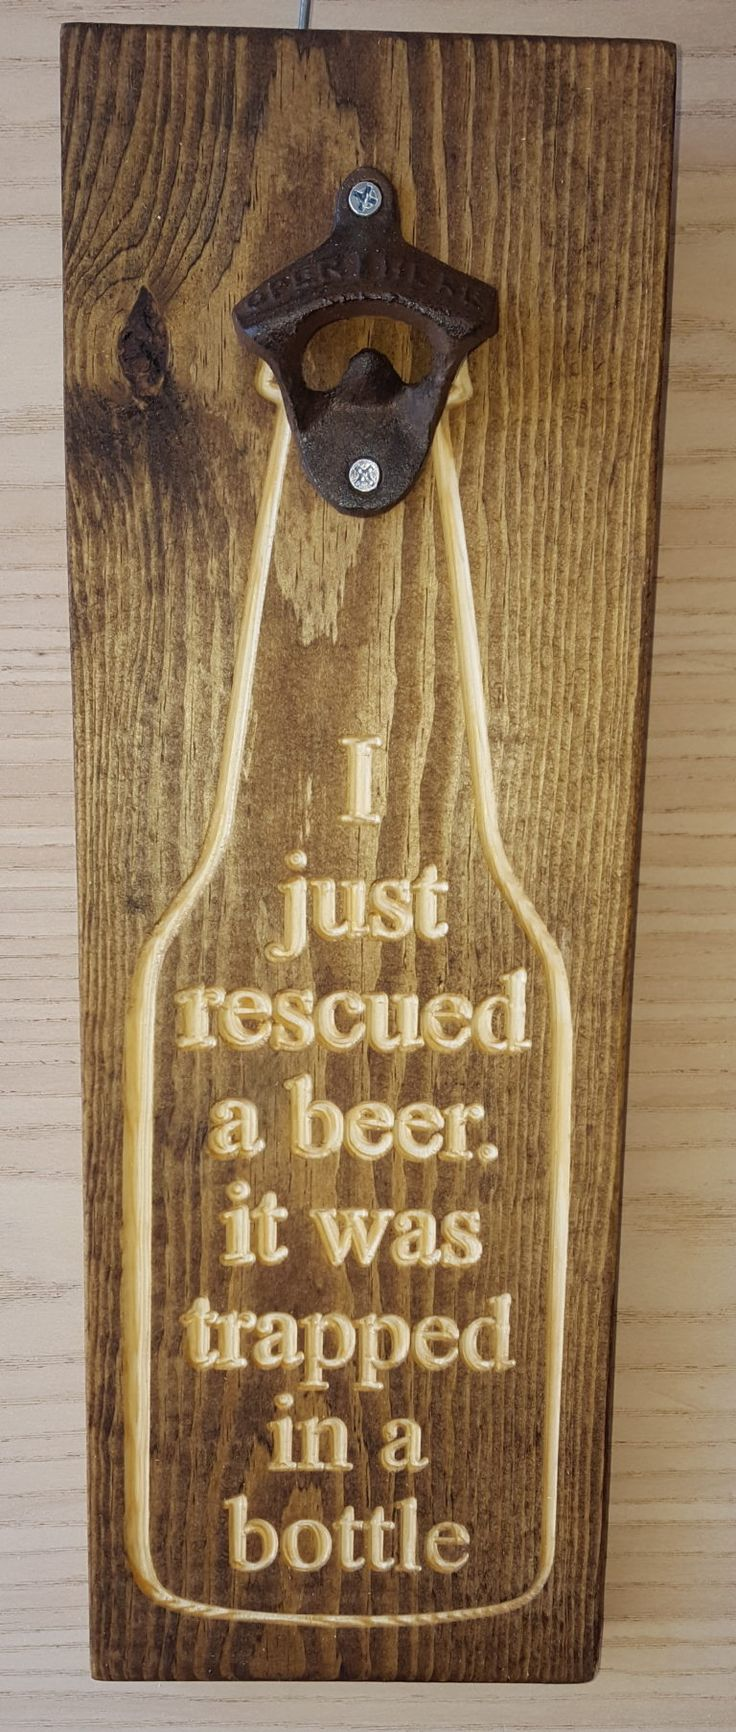 I just rescued a beer - Opener sign